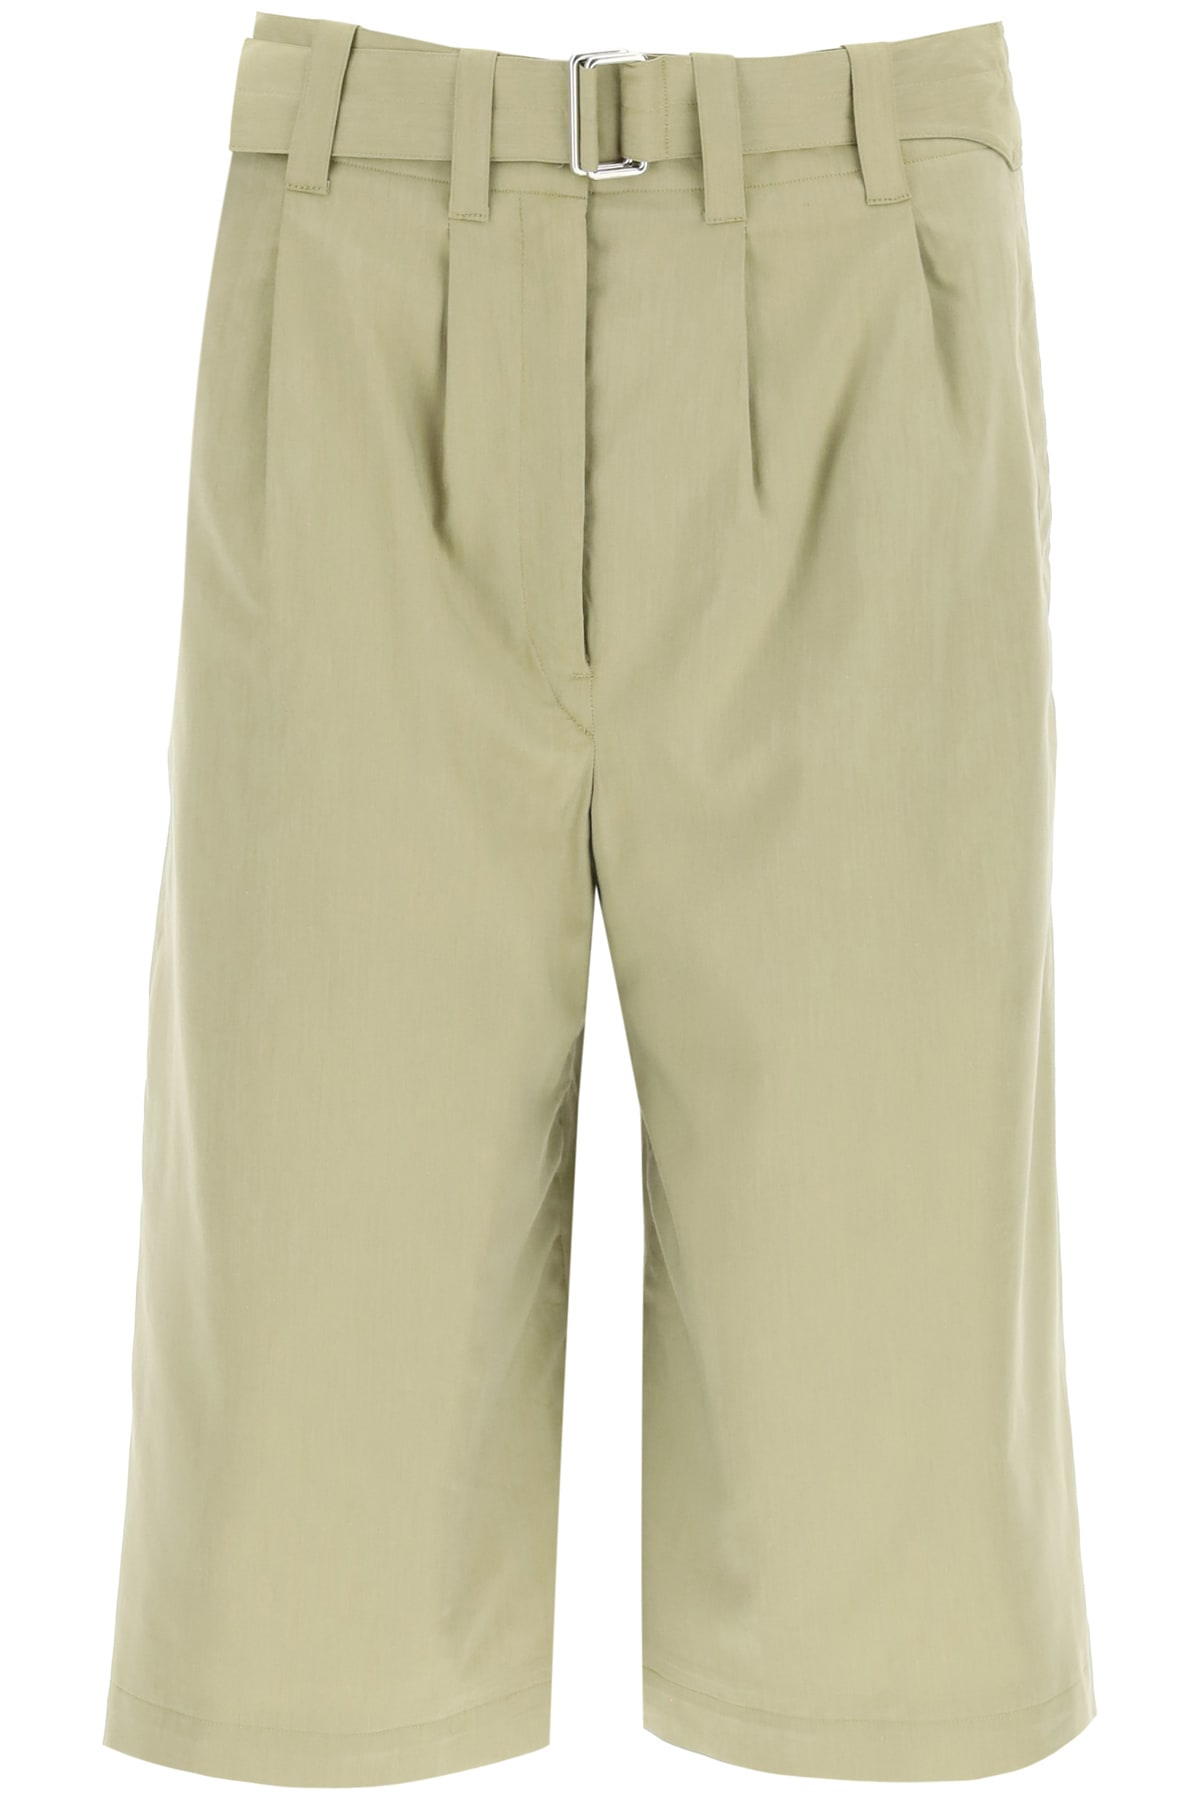 Lemaire Cottons PLEATED SHORTS